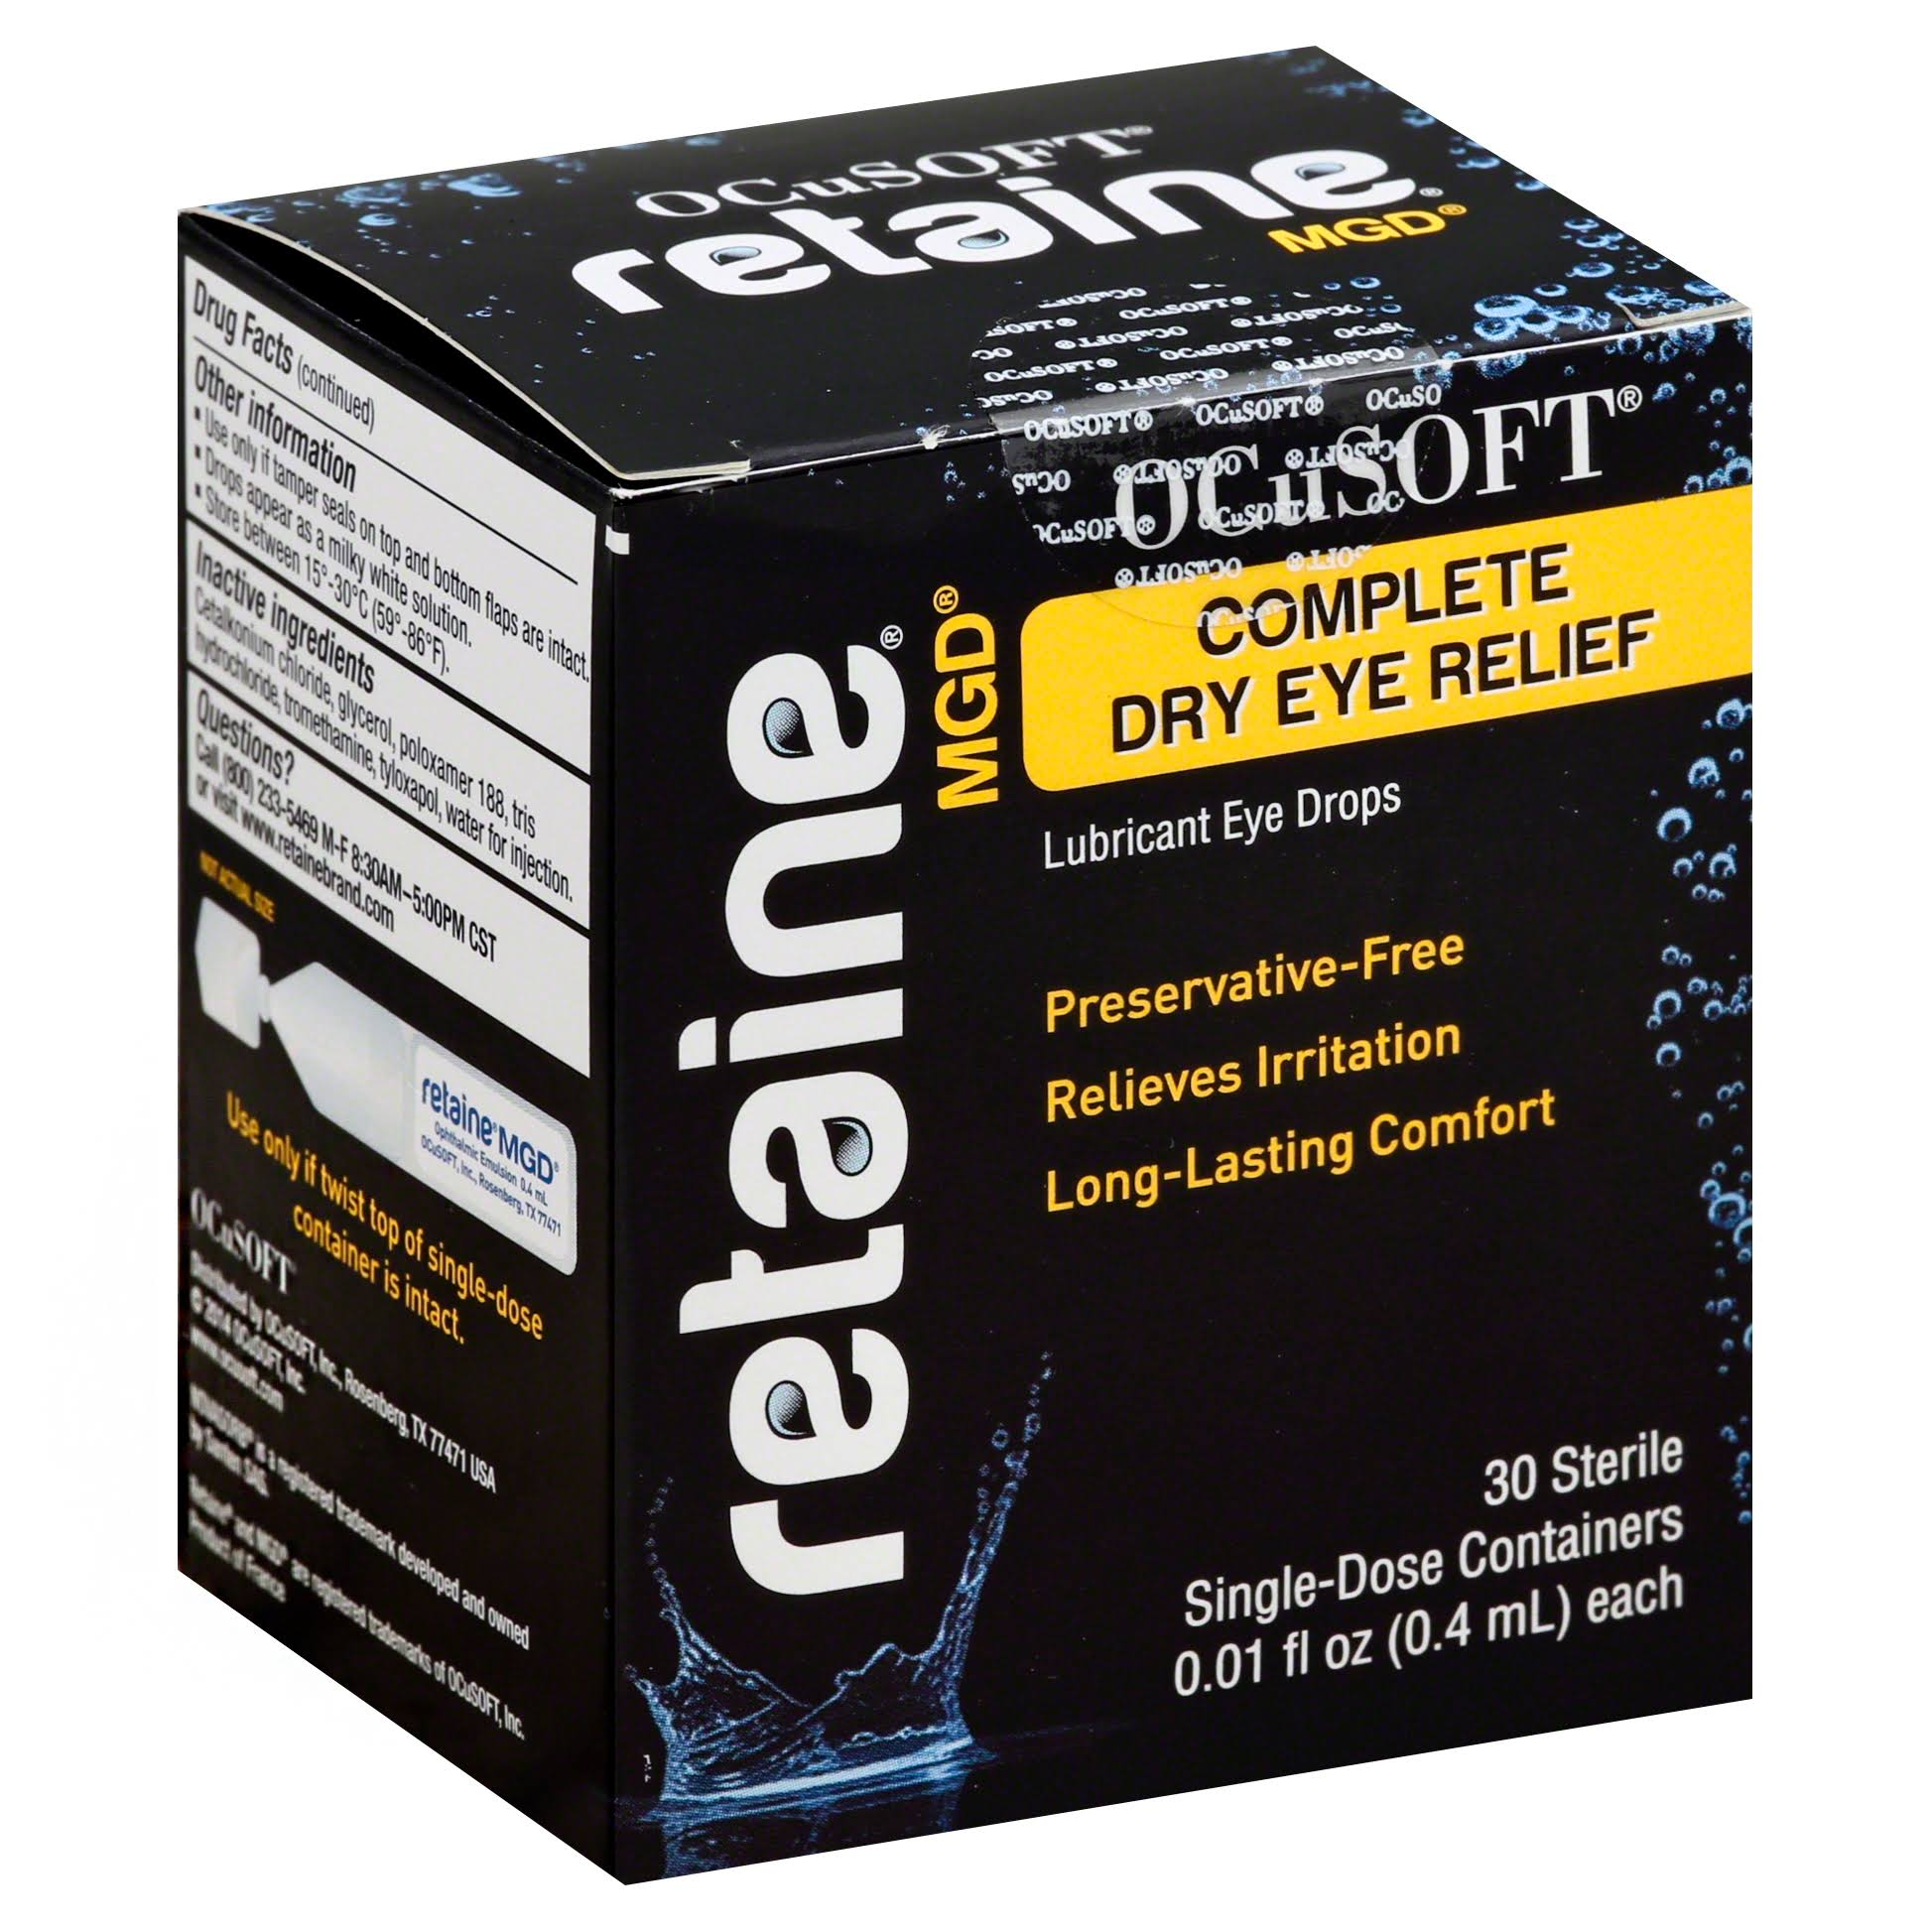 Ocusoft Retaine Mgd Complete Dry Eye Relief - 30 Sterile Single-Dose Containers